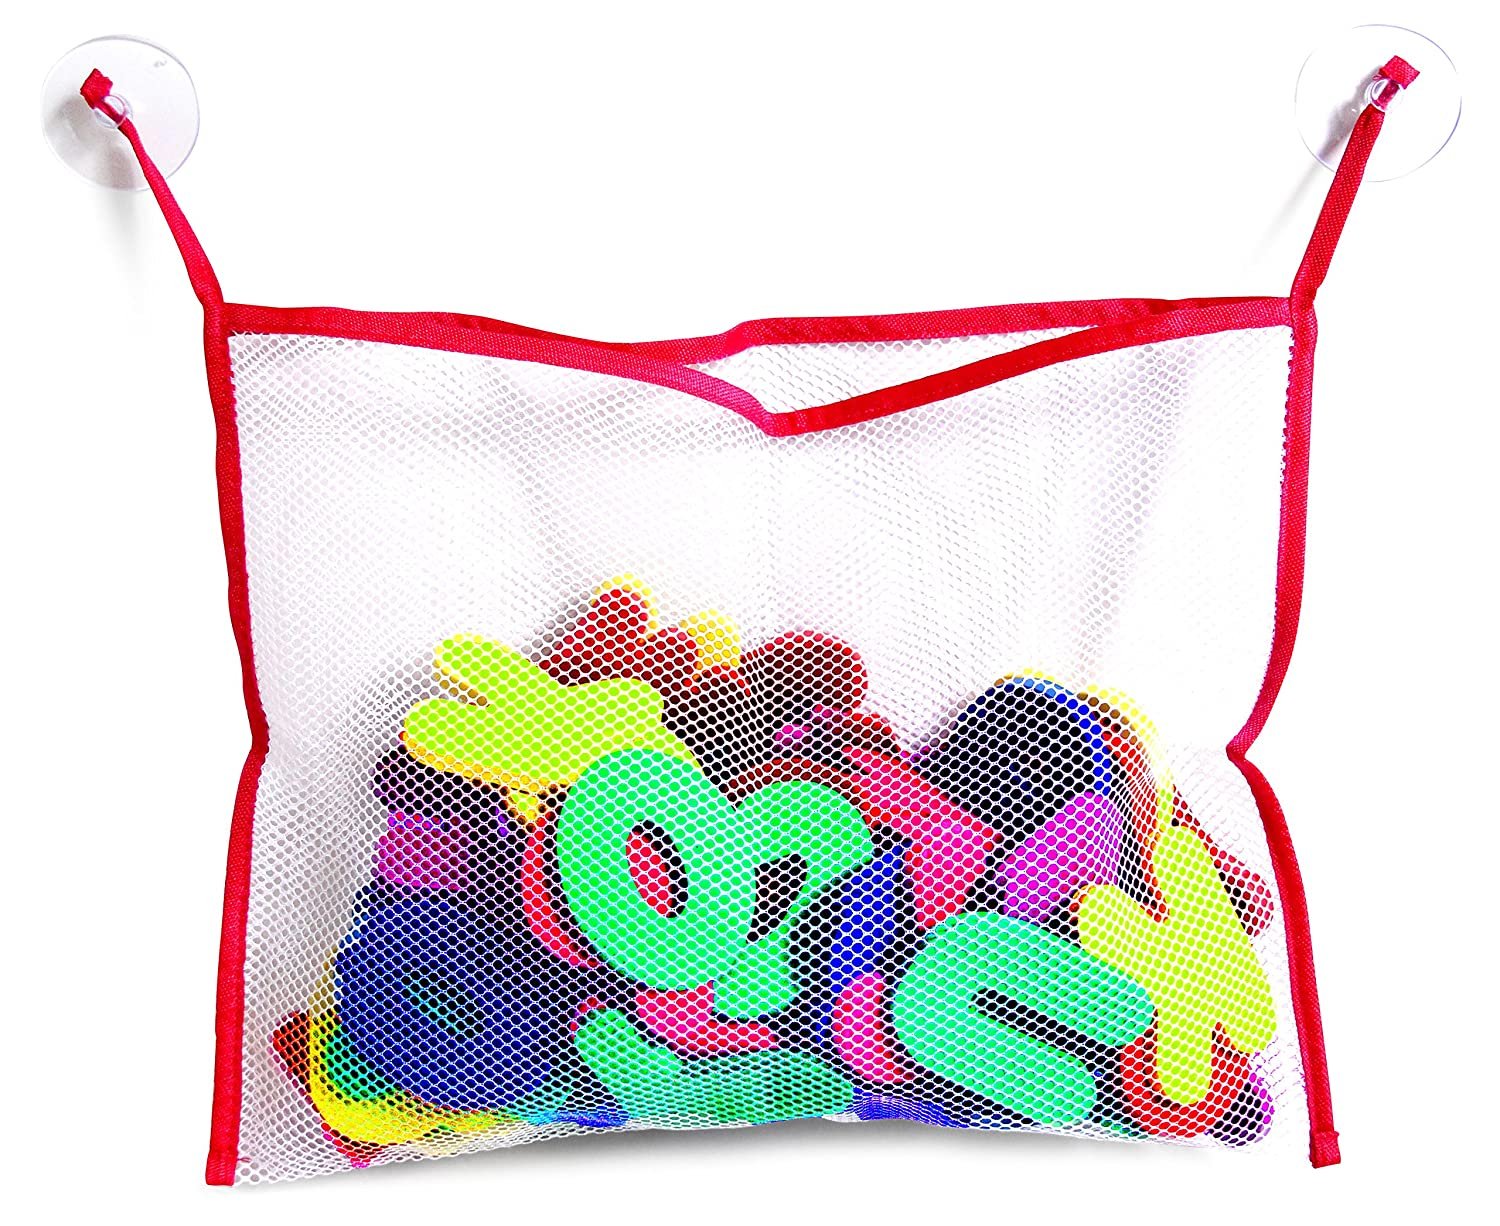 BeBesafety Bath foam letters and numbers with toy storage organizer net – Non toxic educational and fun toy for kids!